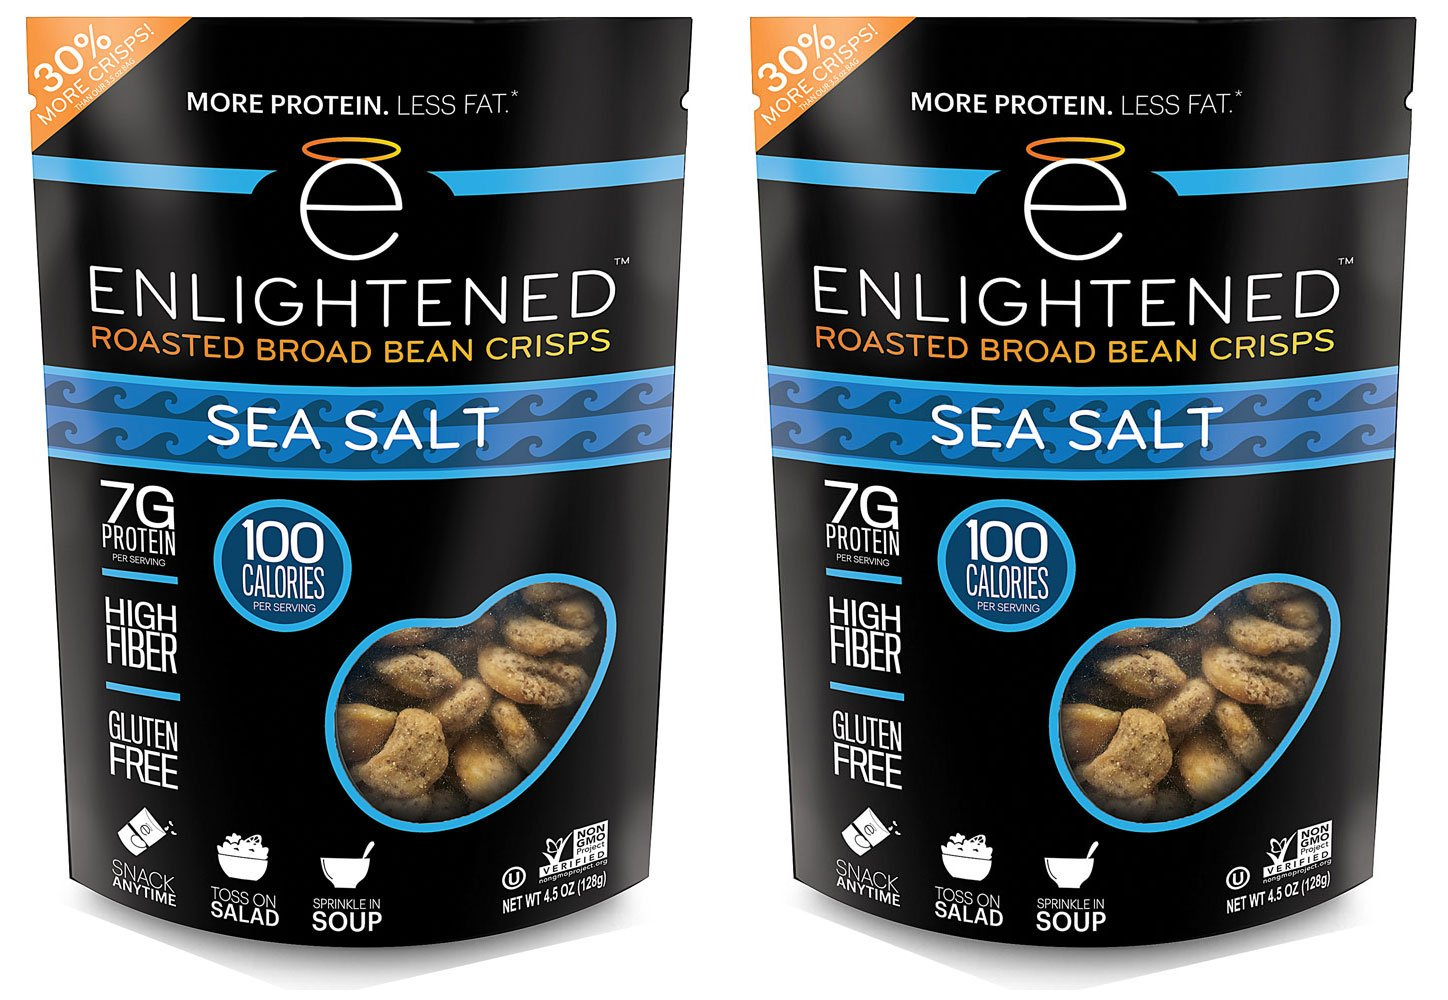 Enlightened - The Good-For-You Crisp, Roasted Broad Beans, Sea Salt, 4.5 Ounce (2-pack)